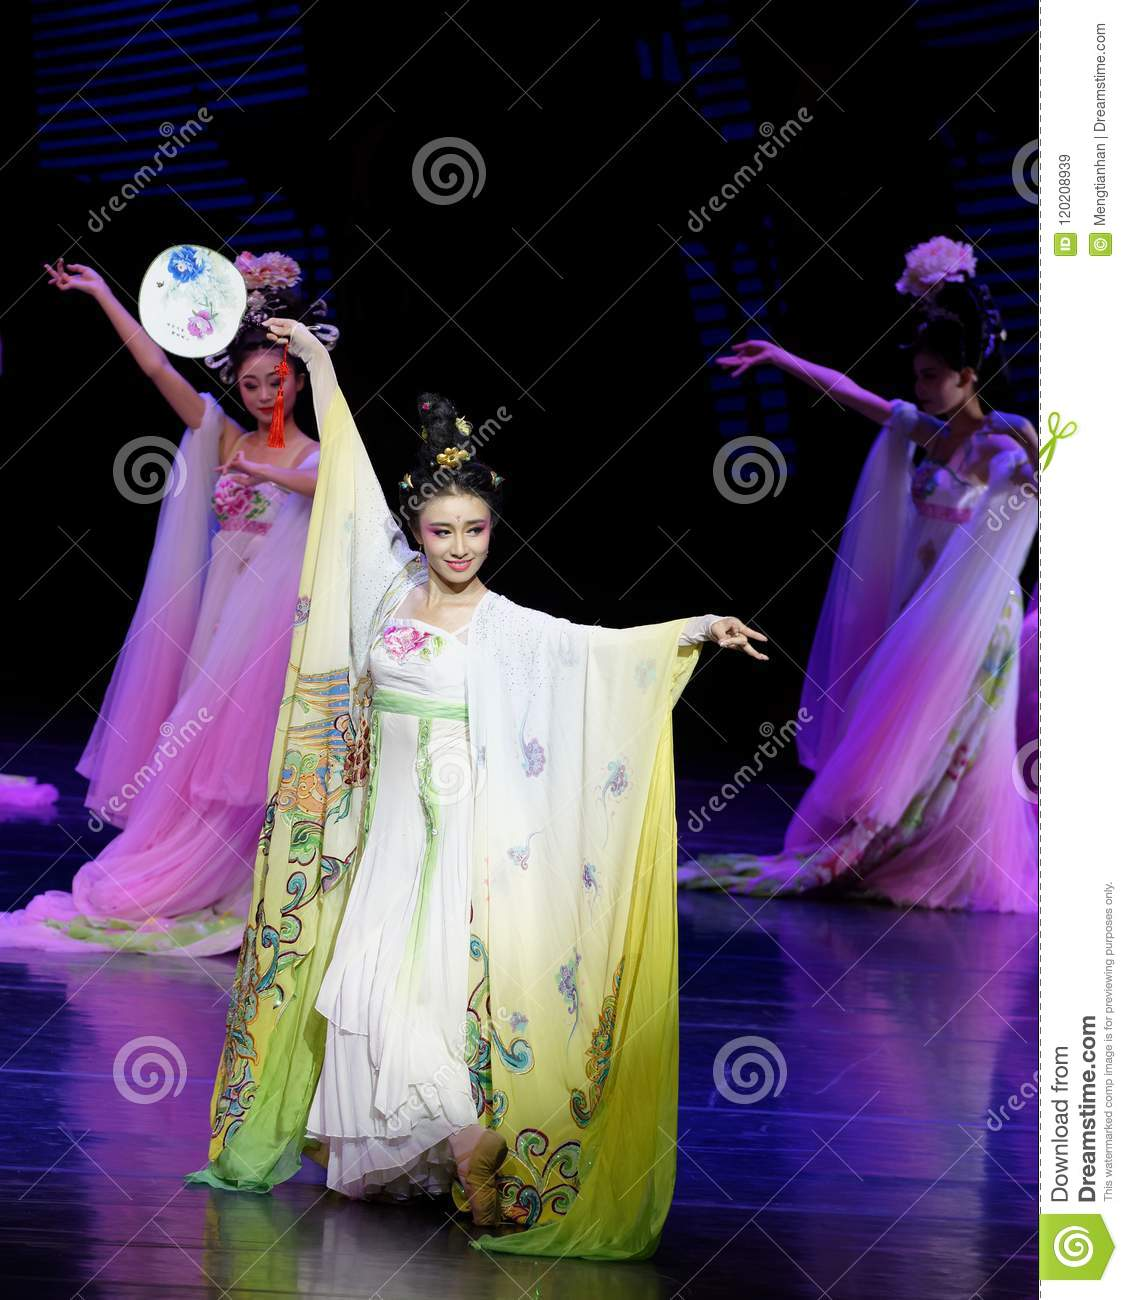 Rainbow Dance-The Second Act: A Feast In The Palace-Epic Dance Drama